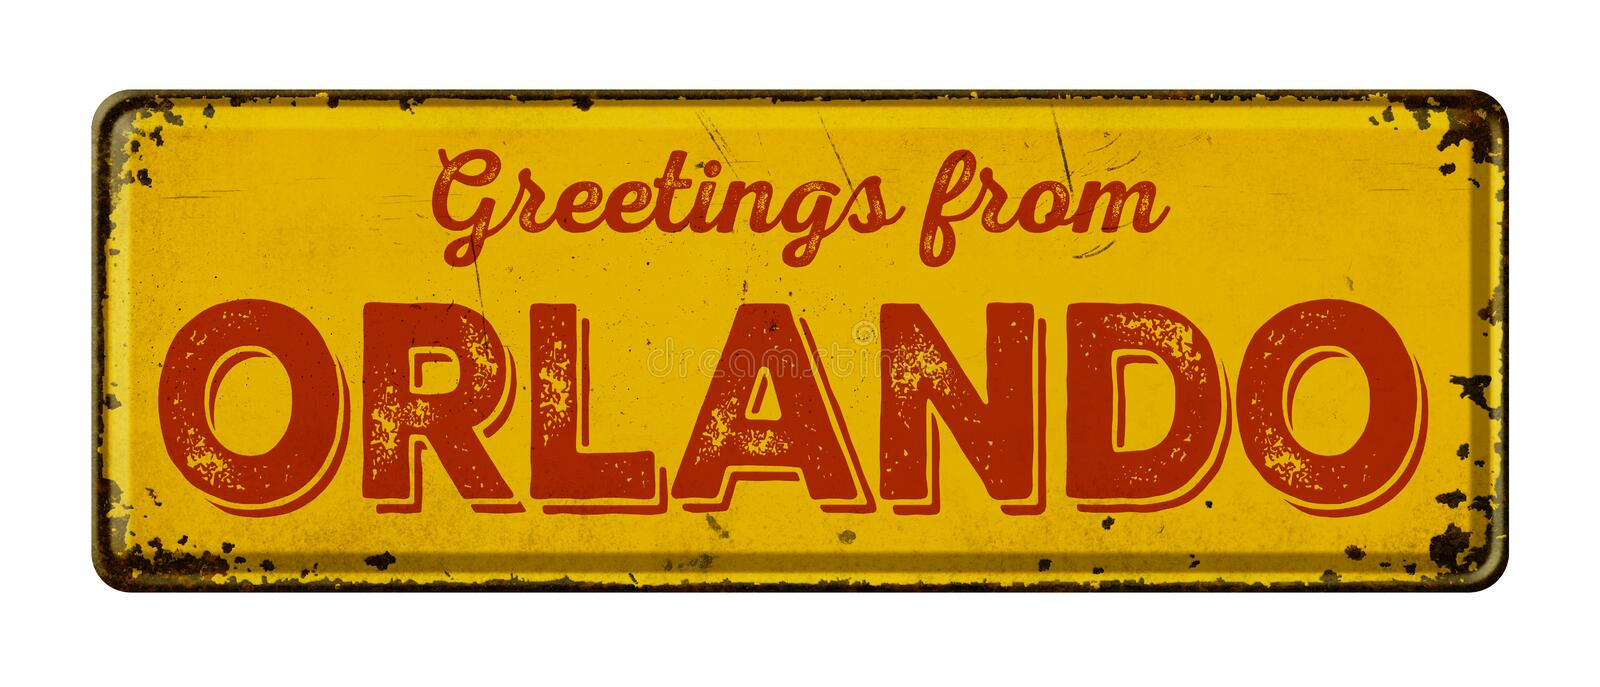 Greetings from Orlando. Vintage metal sign on a white background - Greetings from Orlando royalty free stock image